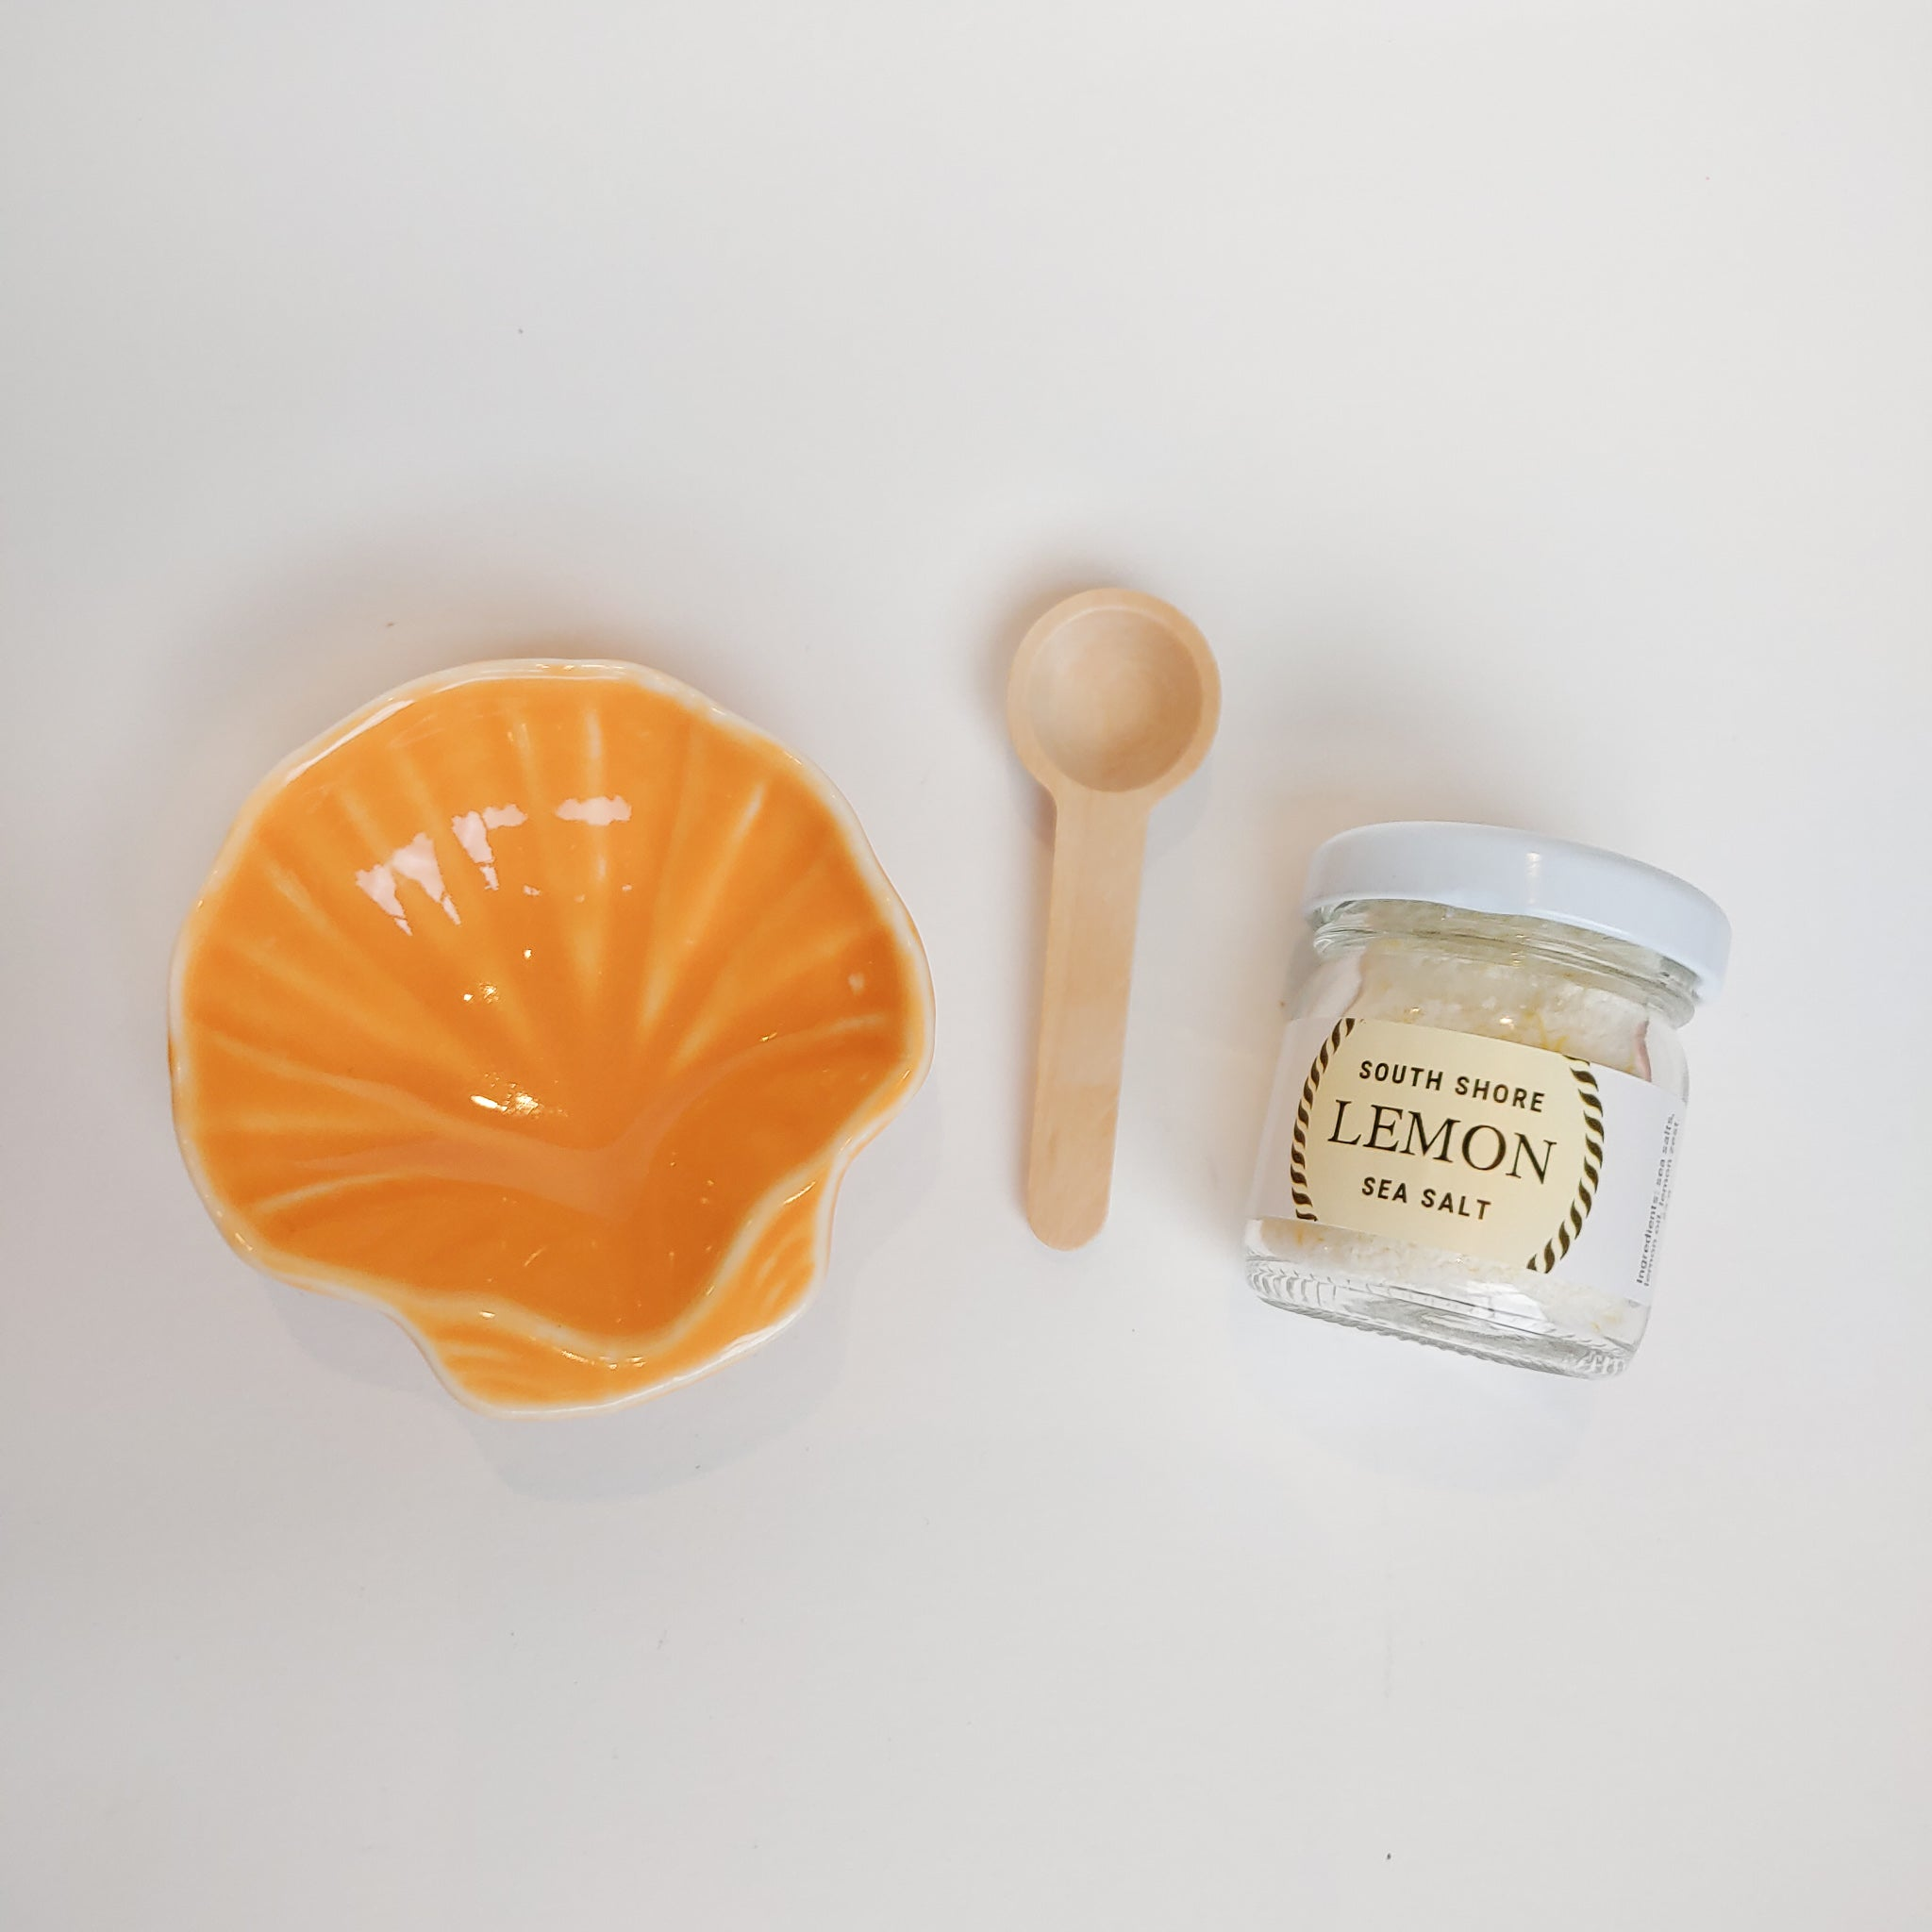 Citrus/Lemon Seashell Gift Set